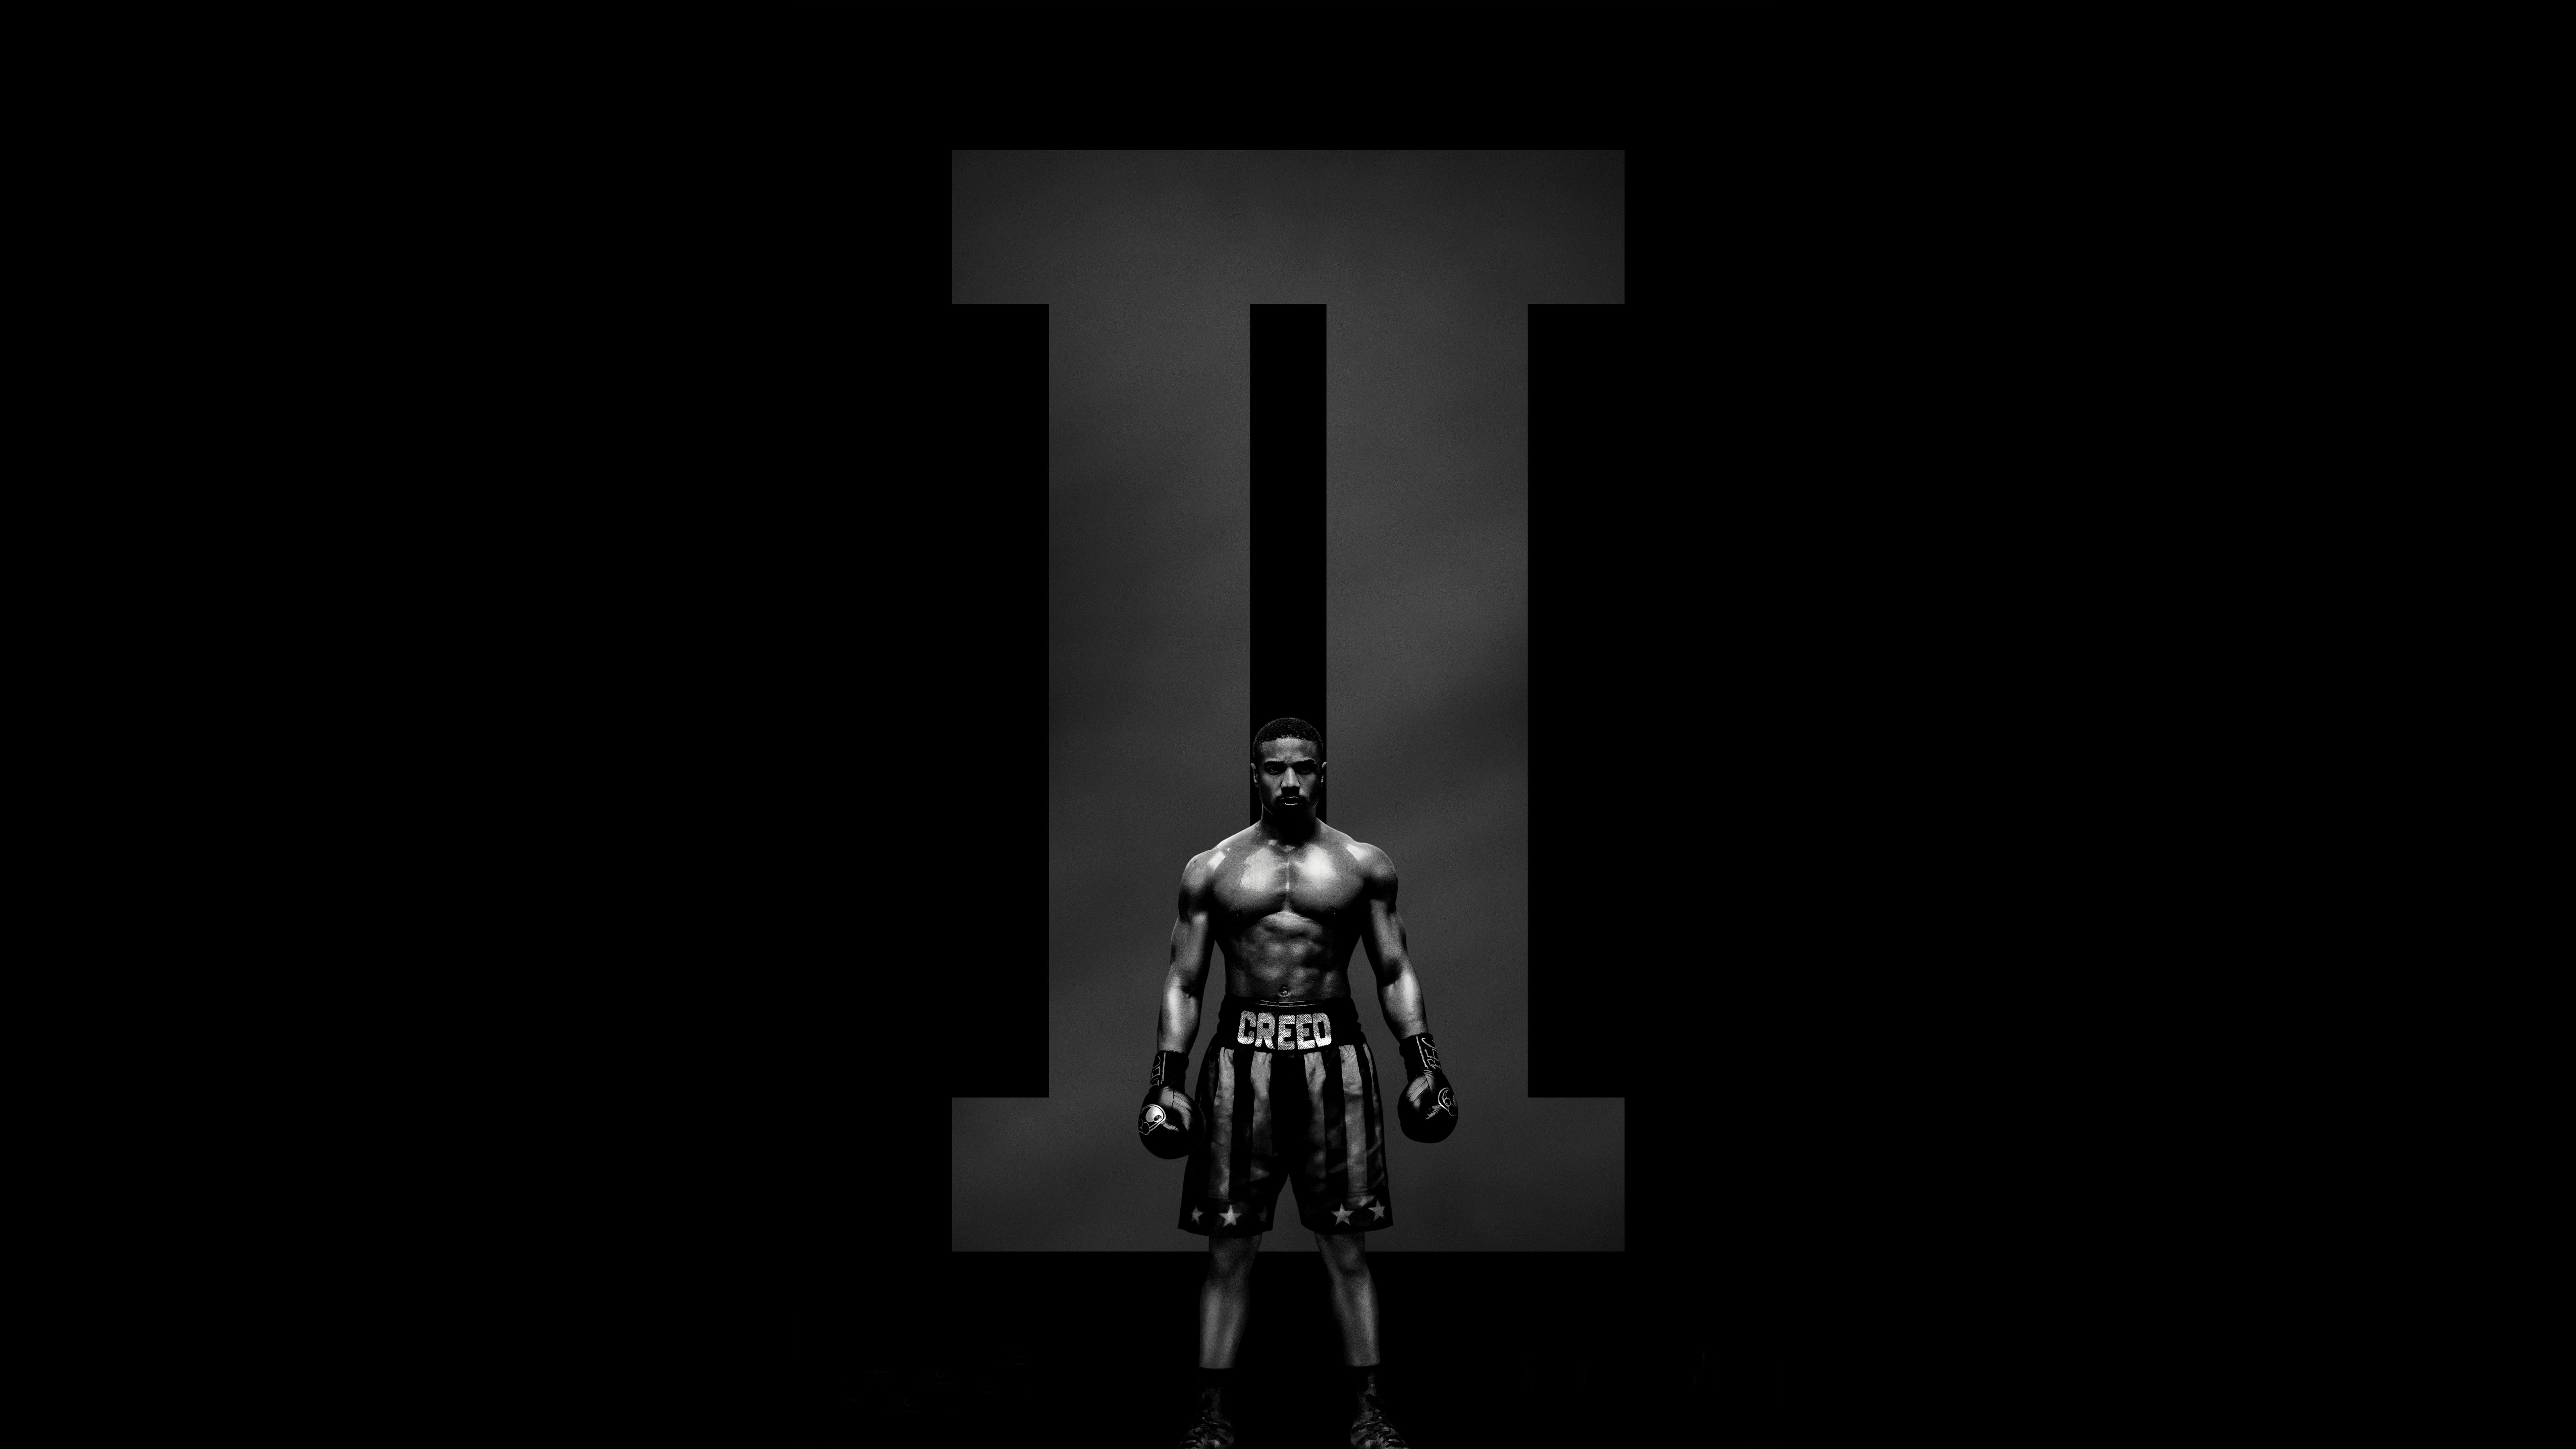 7680x4320 Creed 2 Movie 8k, HD Movies, 4k Wallpapers, Images ...